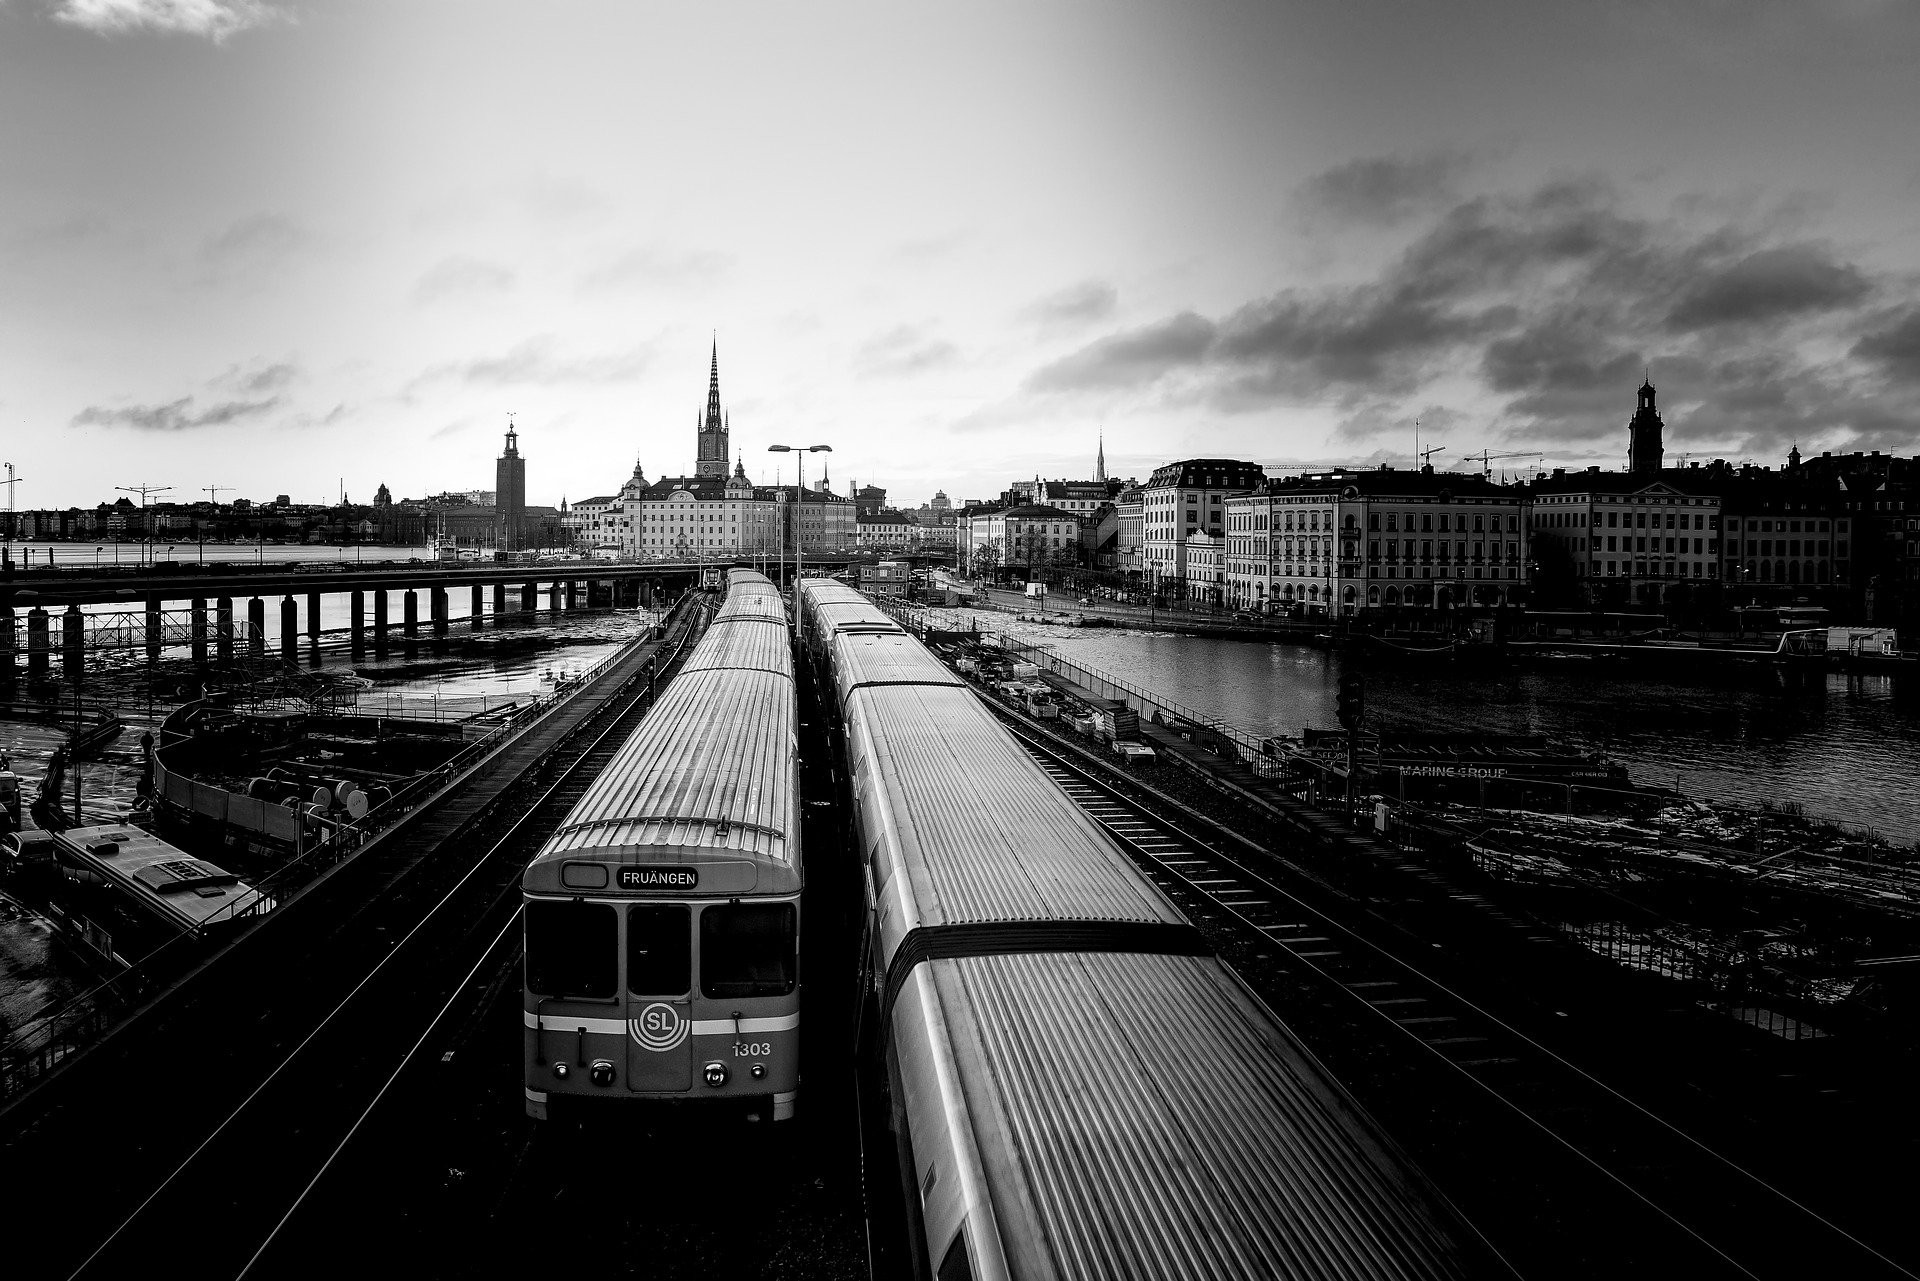 Two trains pulling out of Stockholm